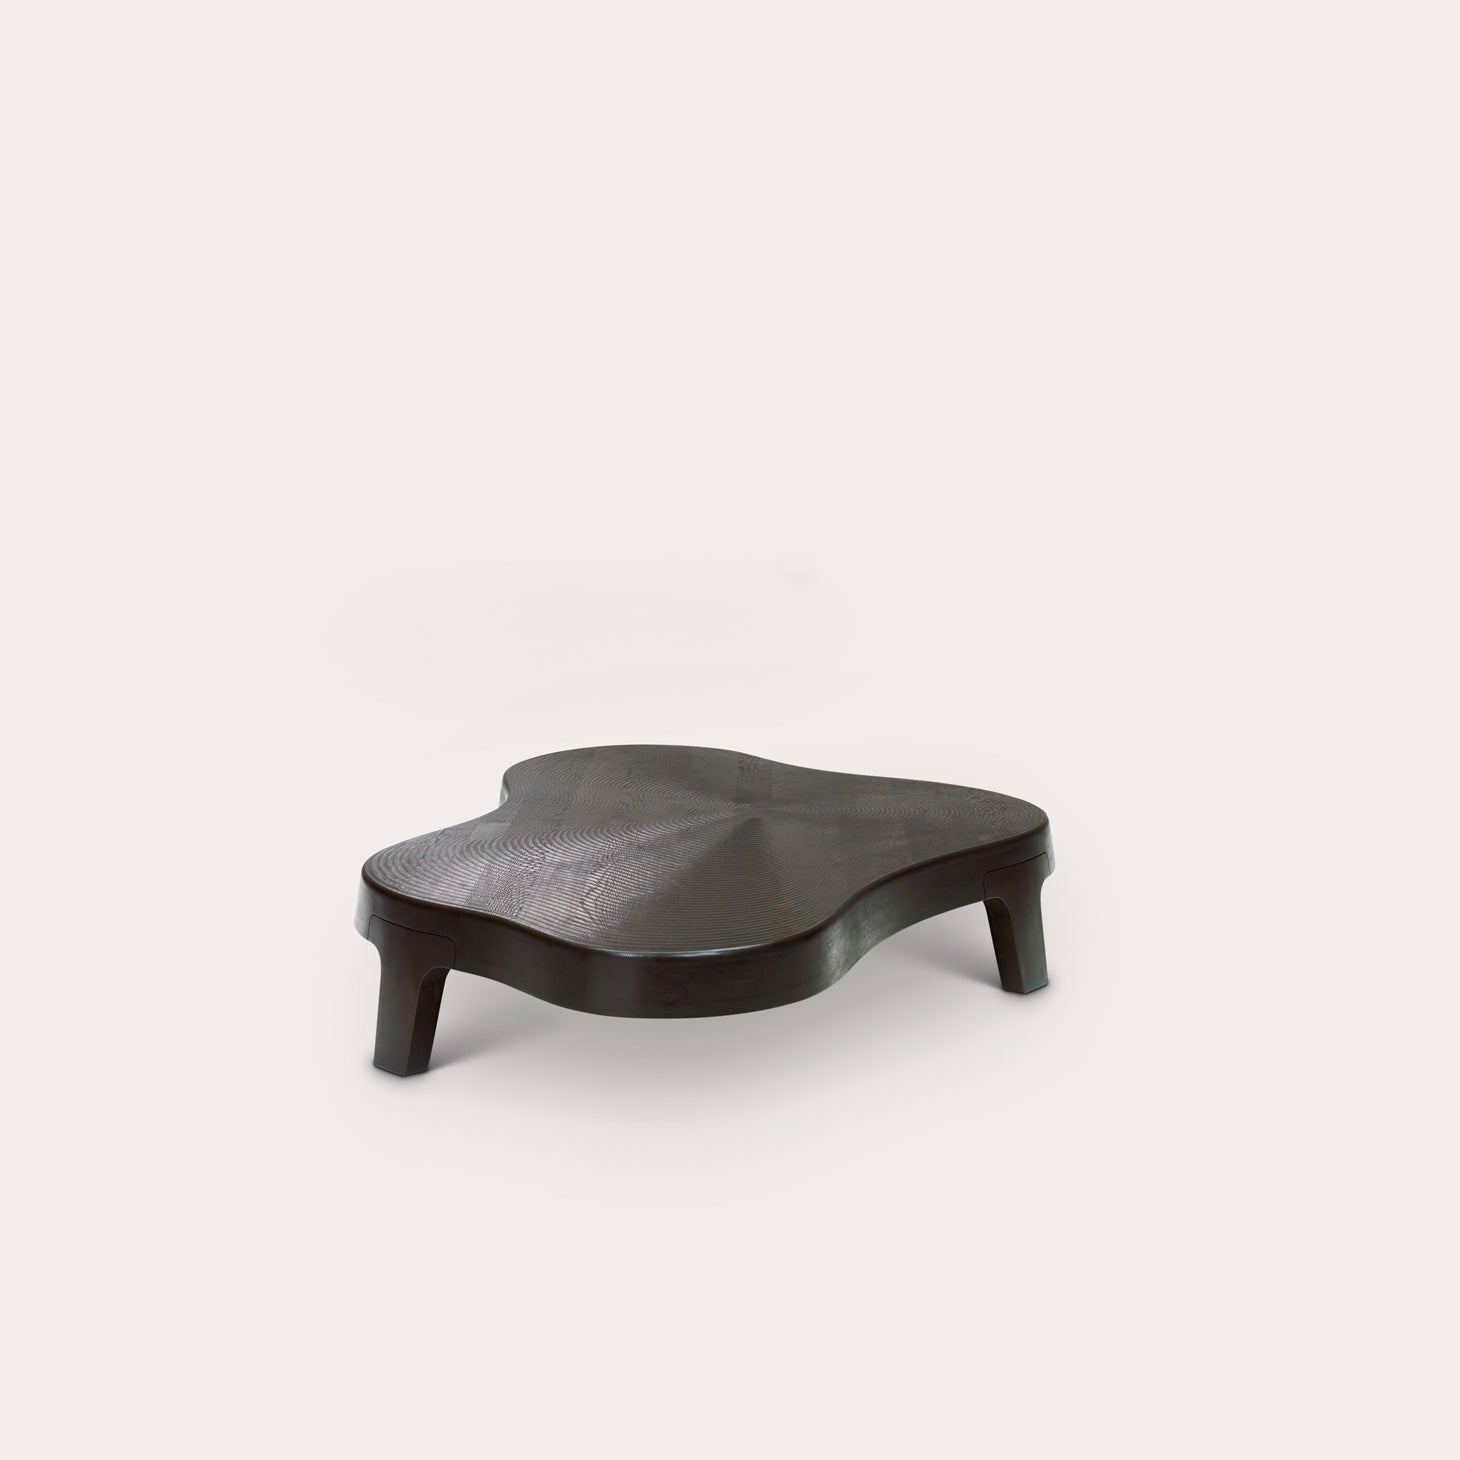 Isola Coffee Table Tables Roderick Vos Designer Furniture Sku: 247-230-10330